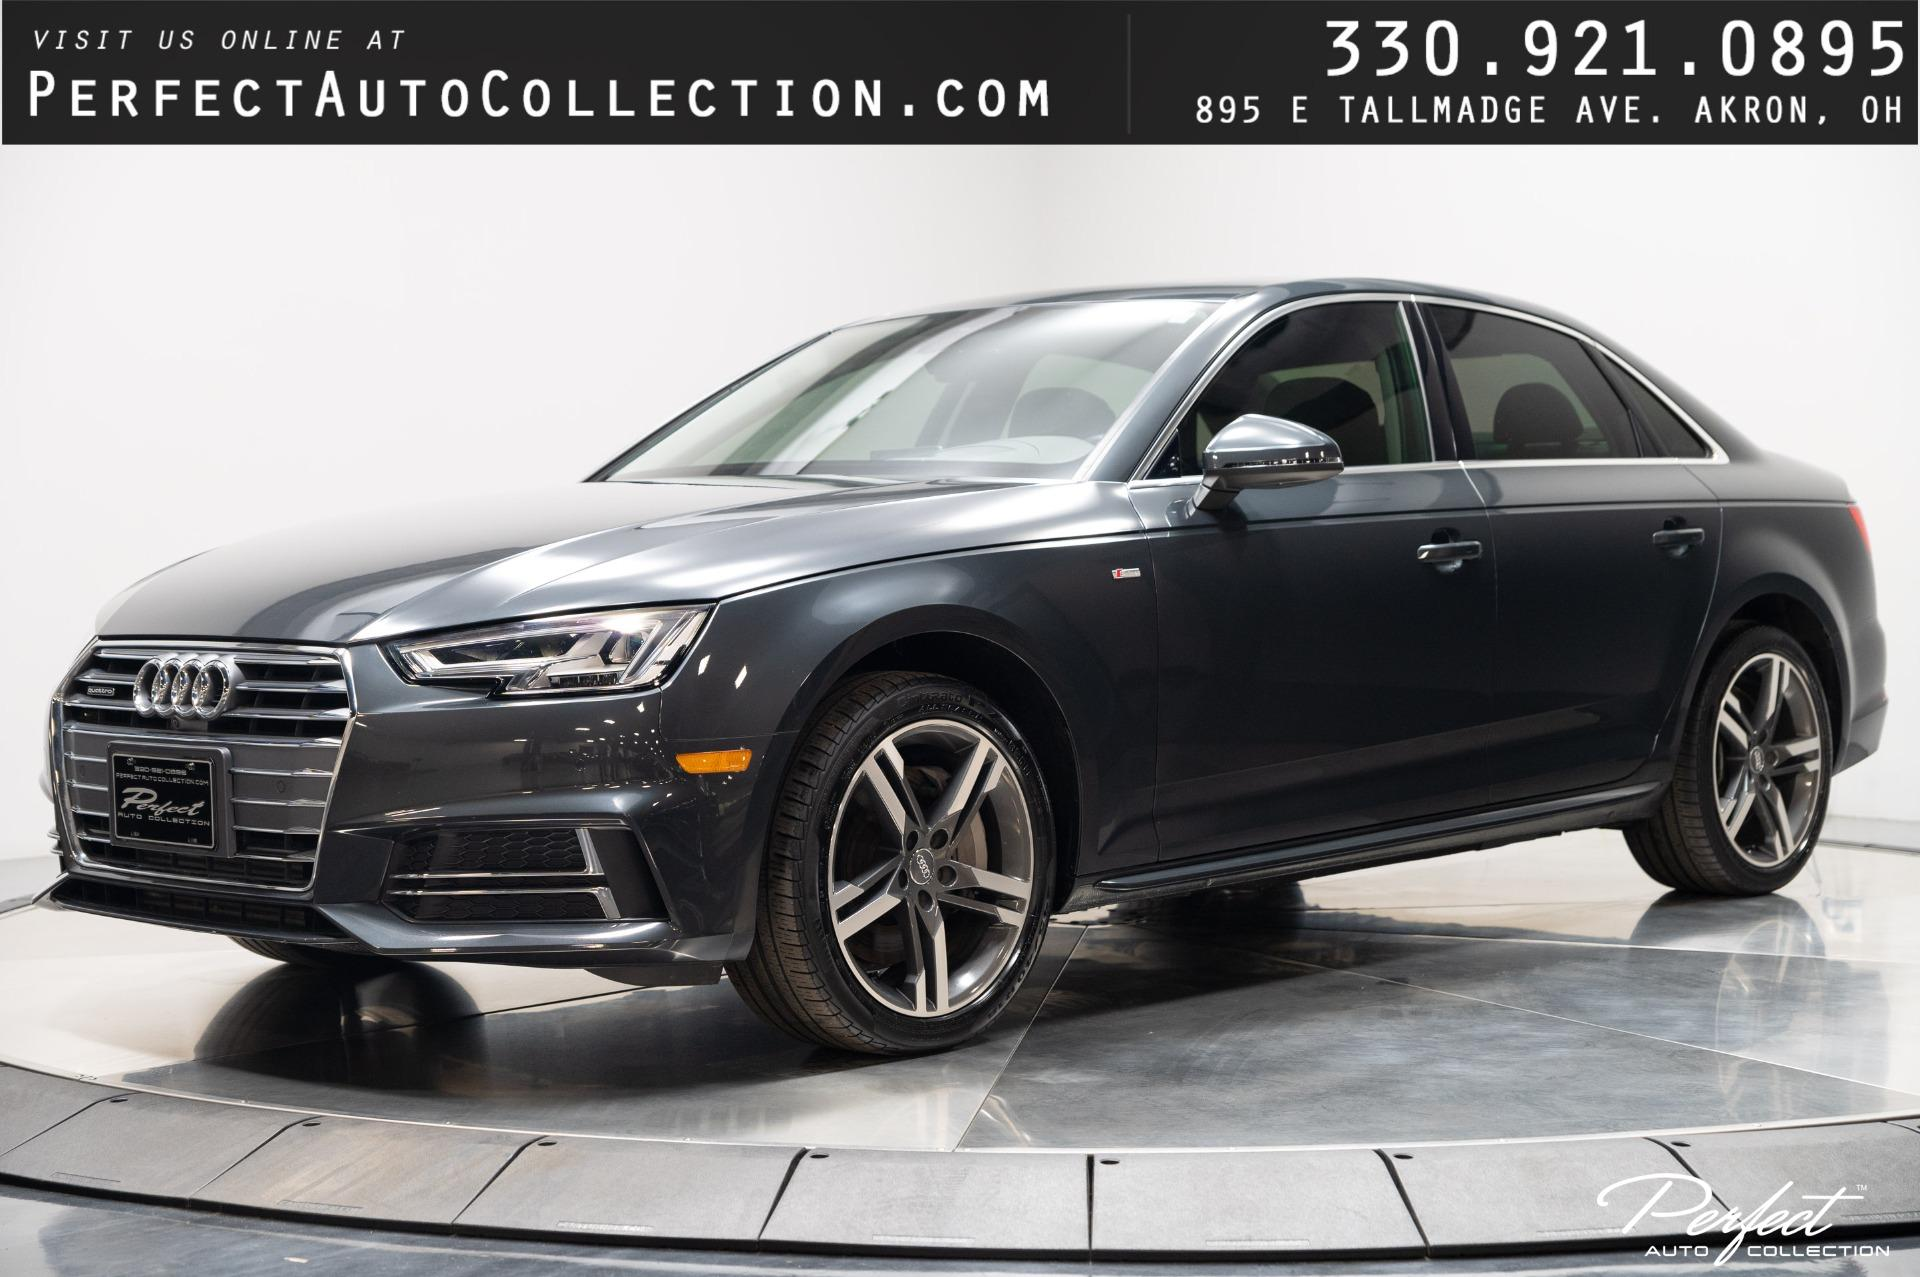 Used 2017 Audi A4 2.0T quattro Prestige for sale $30,995 at Perfect Auto Collection in Akron OH 44310 1